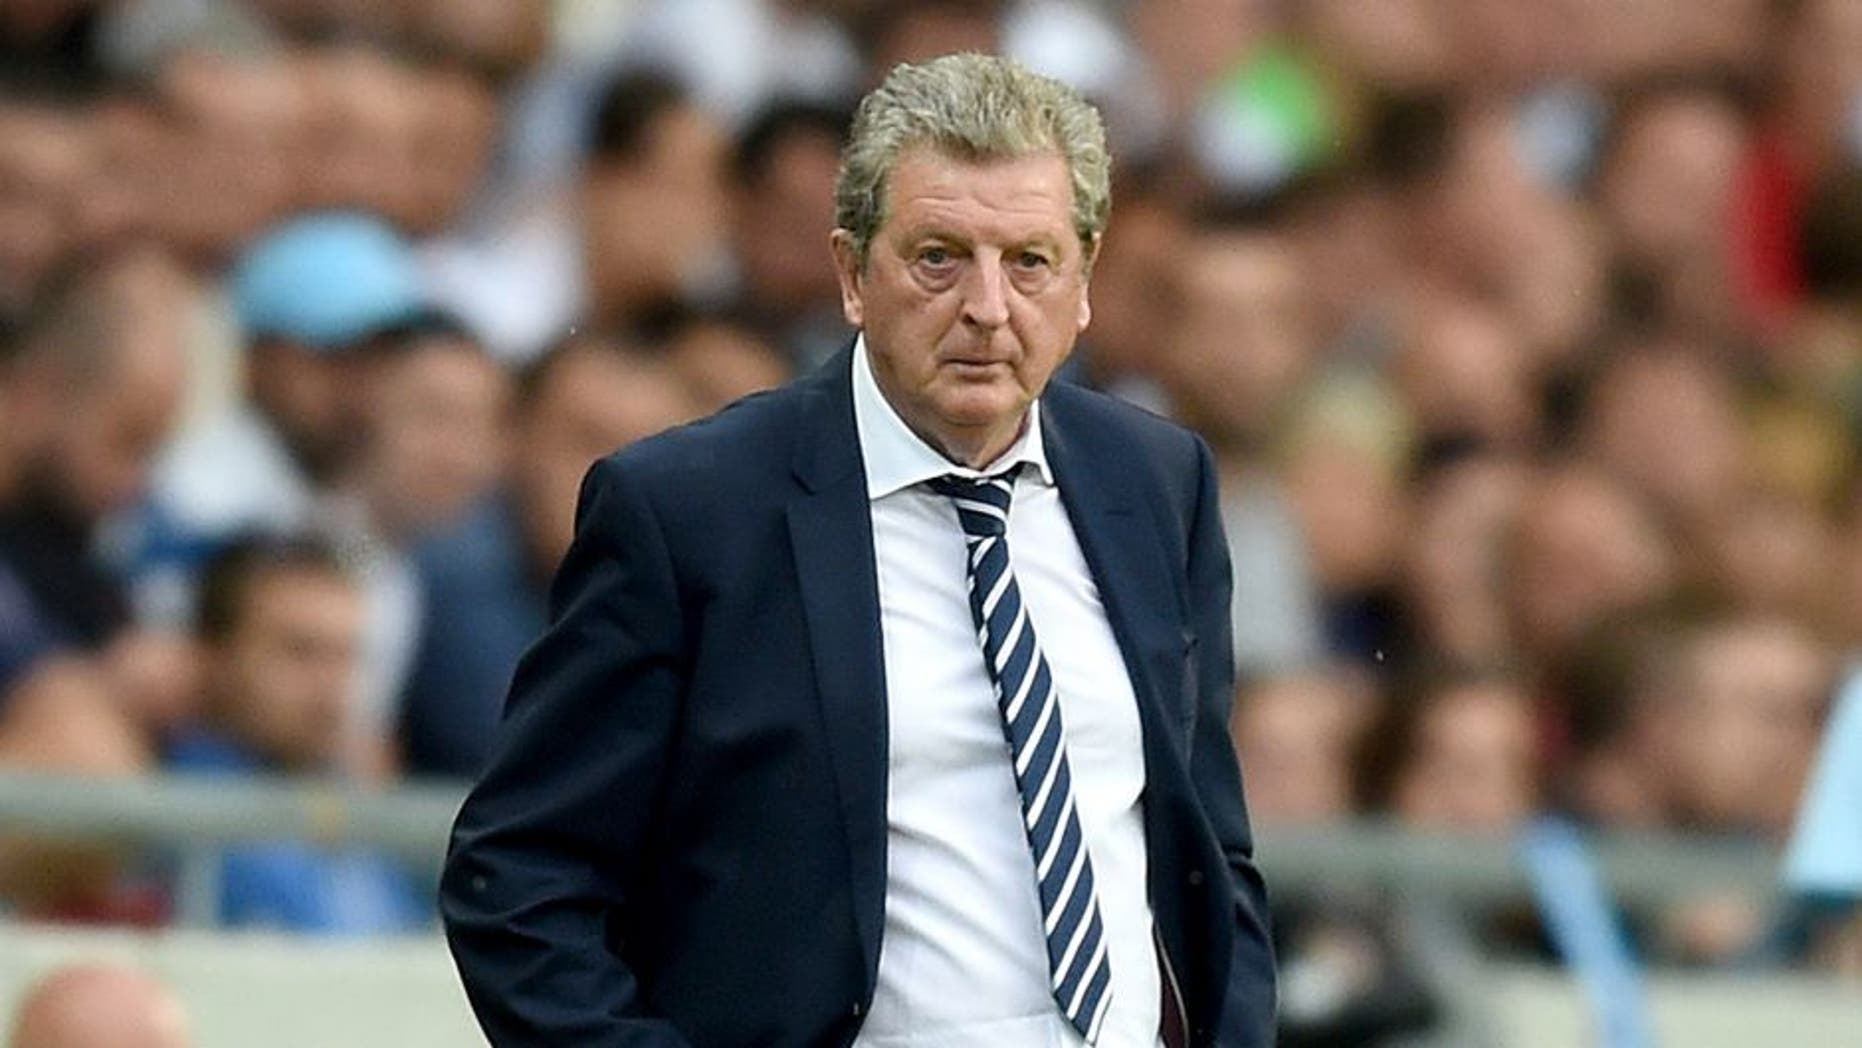 LJUBLJANA, SLOVENIA - JUNE 14: England manager Roy Hodgson looks on during the UEFA EURO 2016 Qualifier between Slovenia and England on at the Stozice Arena on June 14, 2015 in Ljubljana, Slovenia. (Photo by Michael Regan - The FA/The FA via Getty Images)